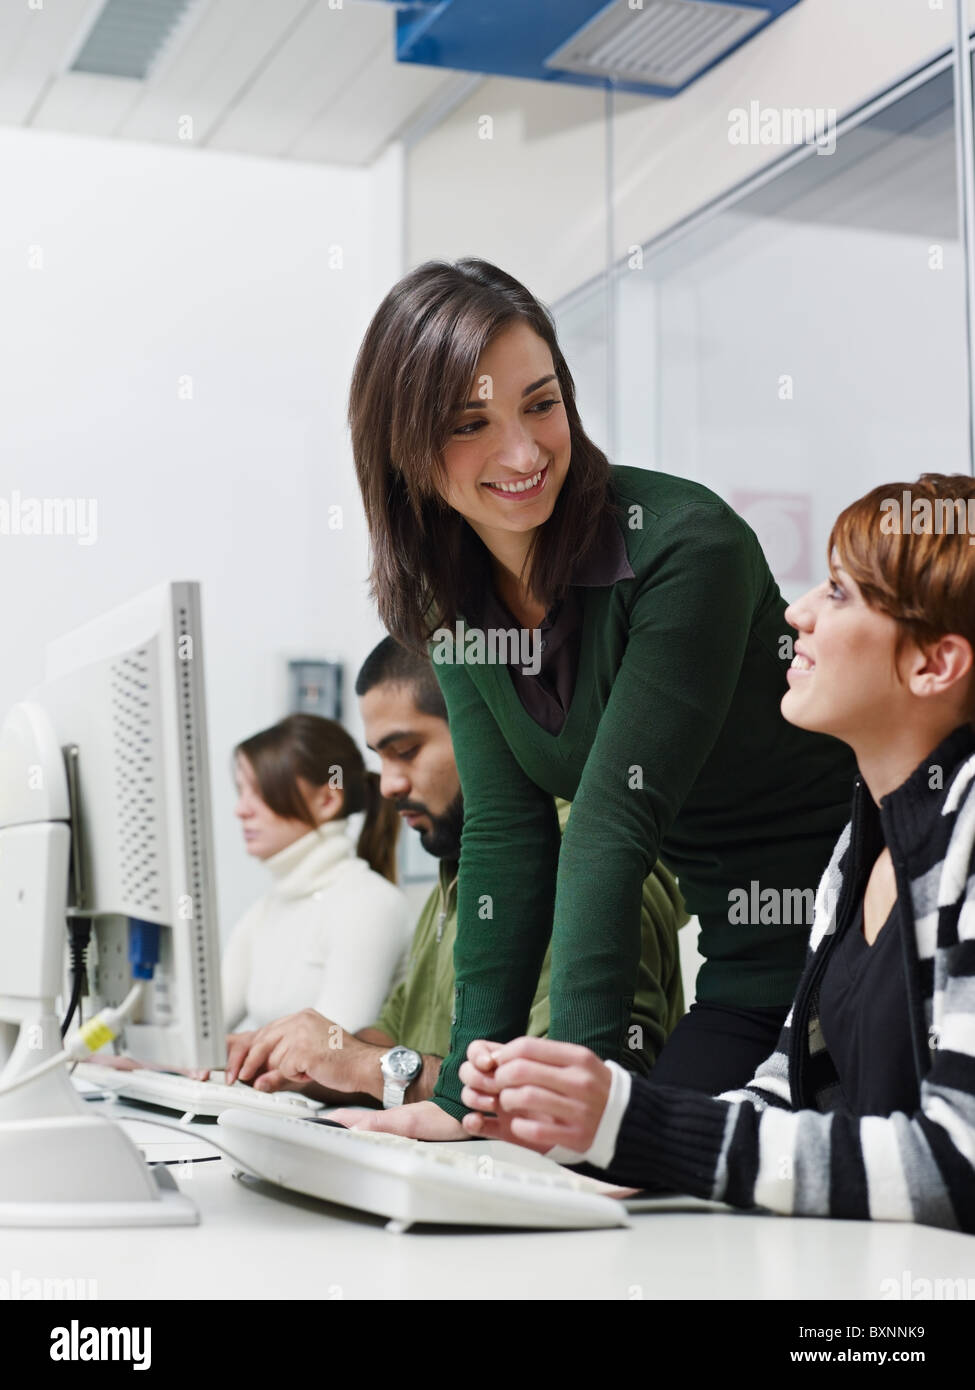 Computer class with caucasian female teacher helping student. Vertical shape, side view, waist up - Stock Image